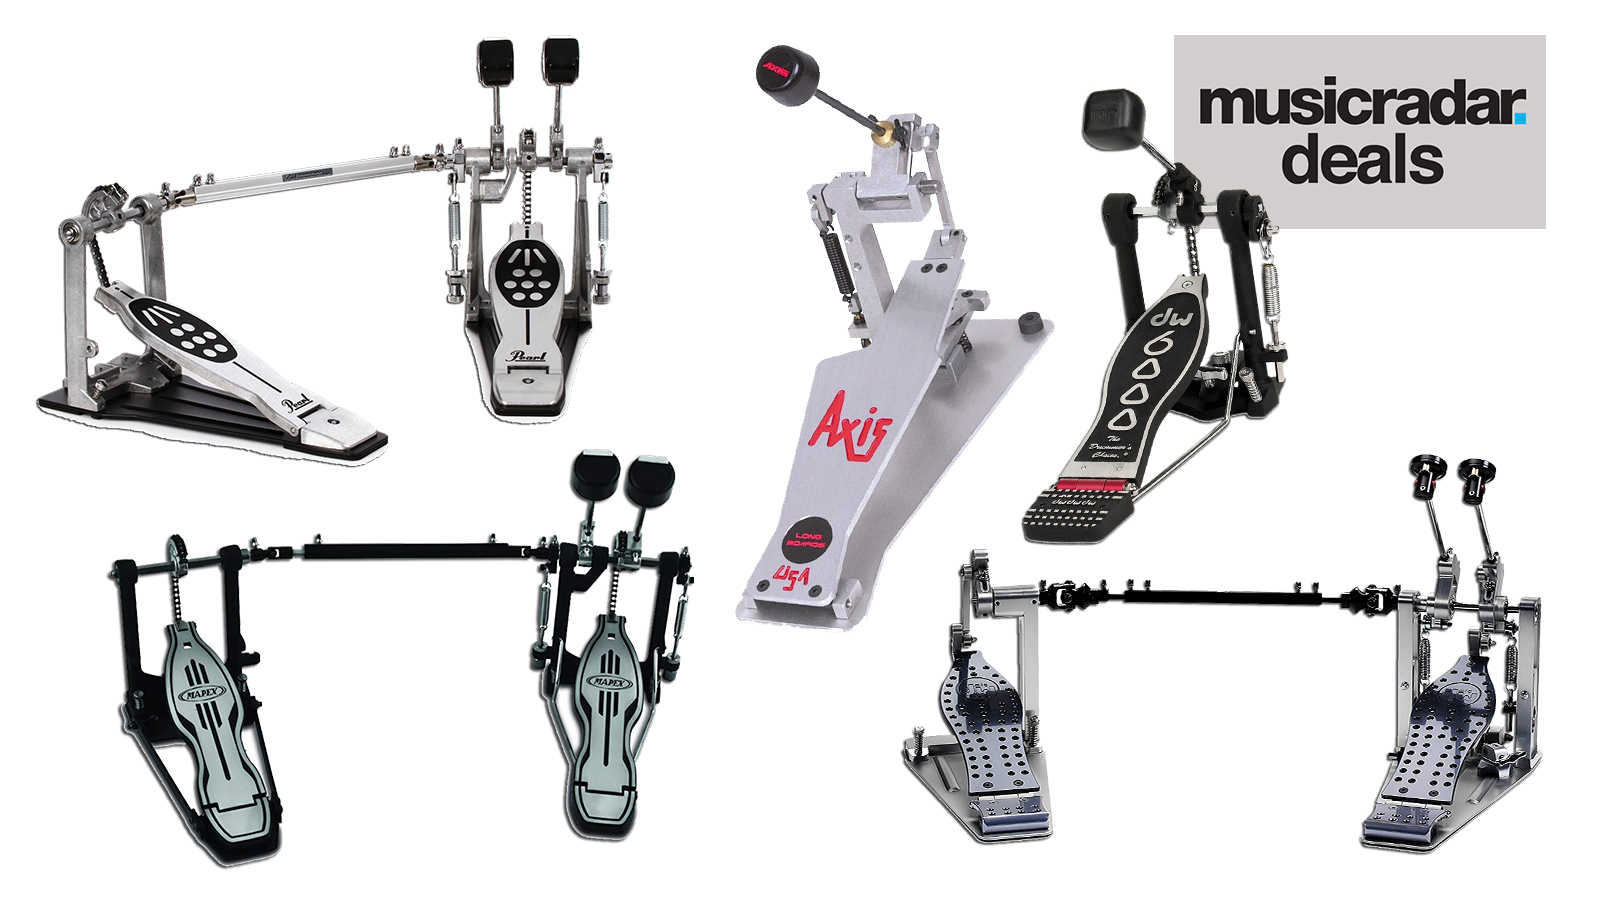 Bass drum pedal blowout!